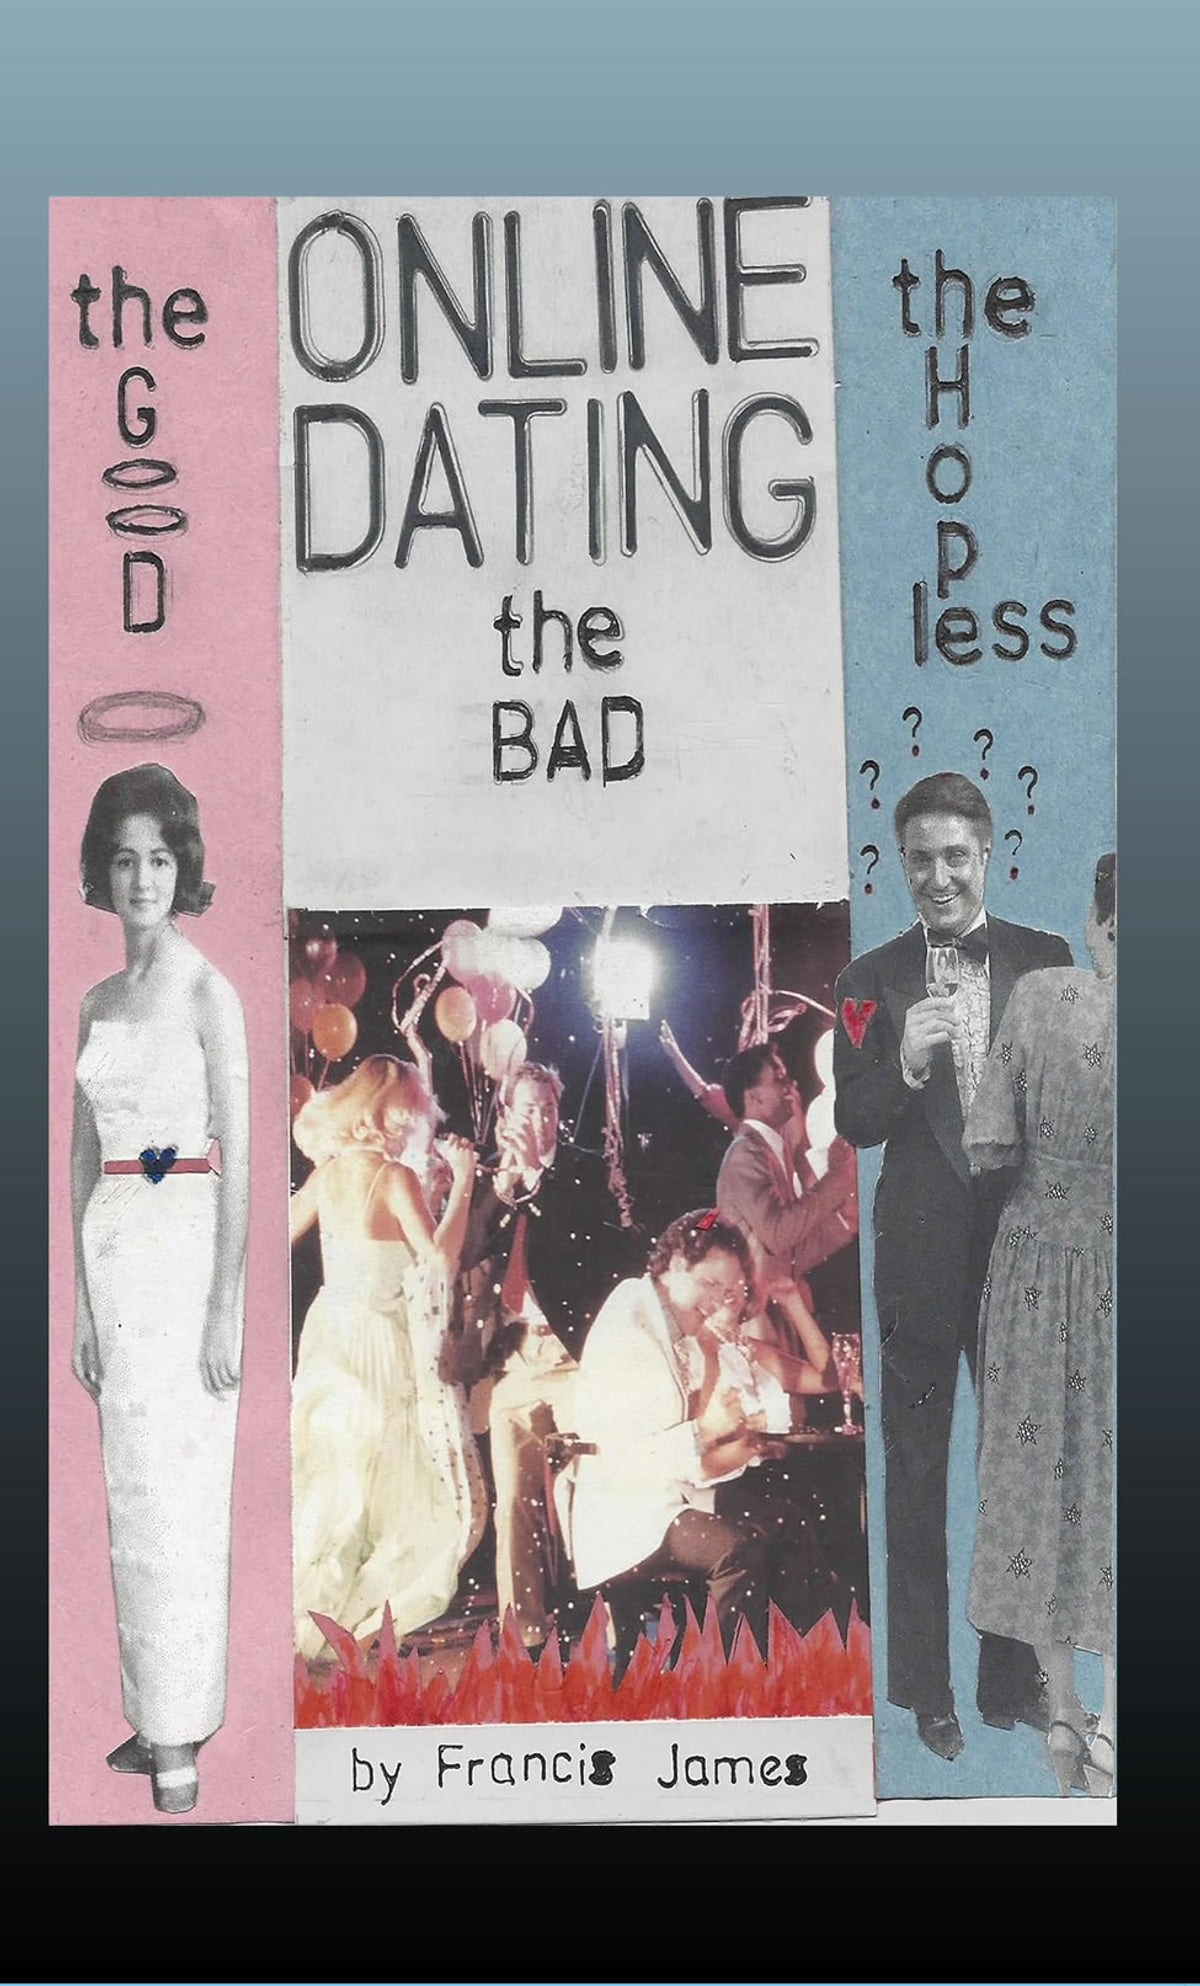 Online dating is it good or bad